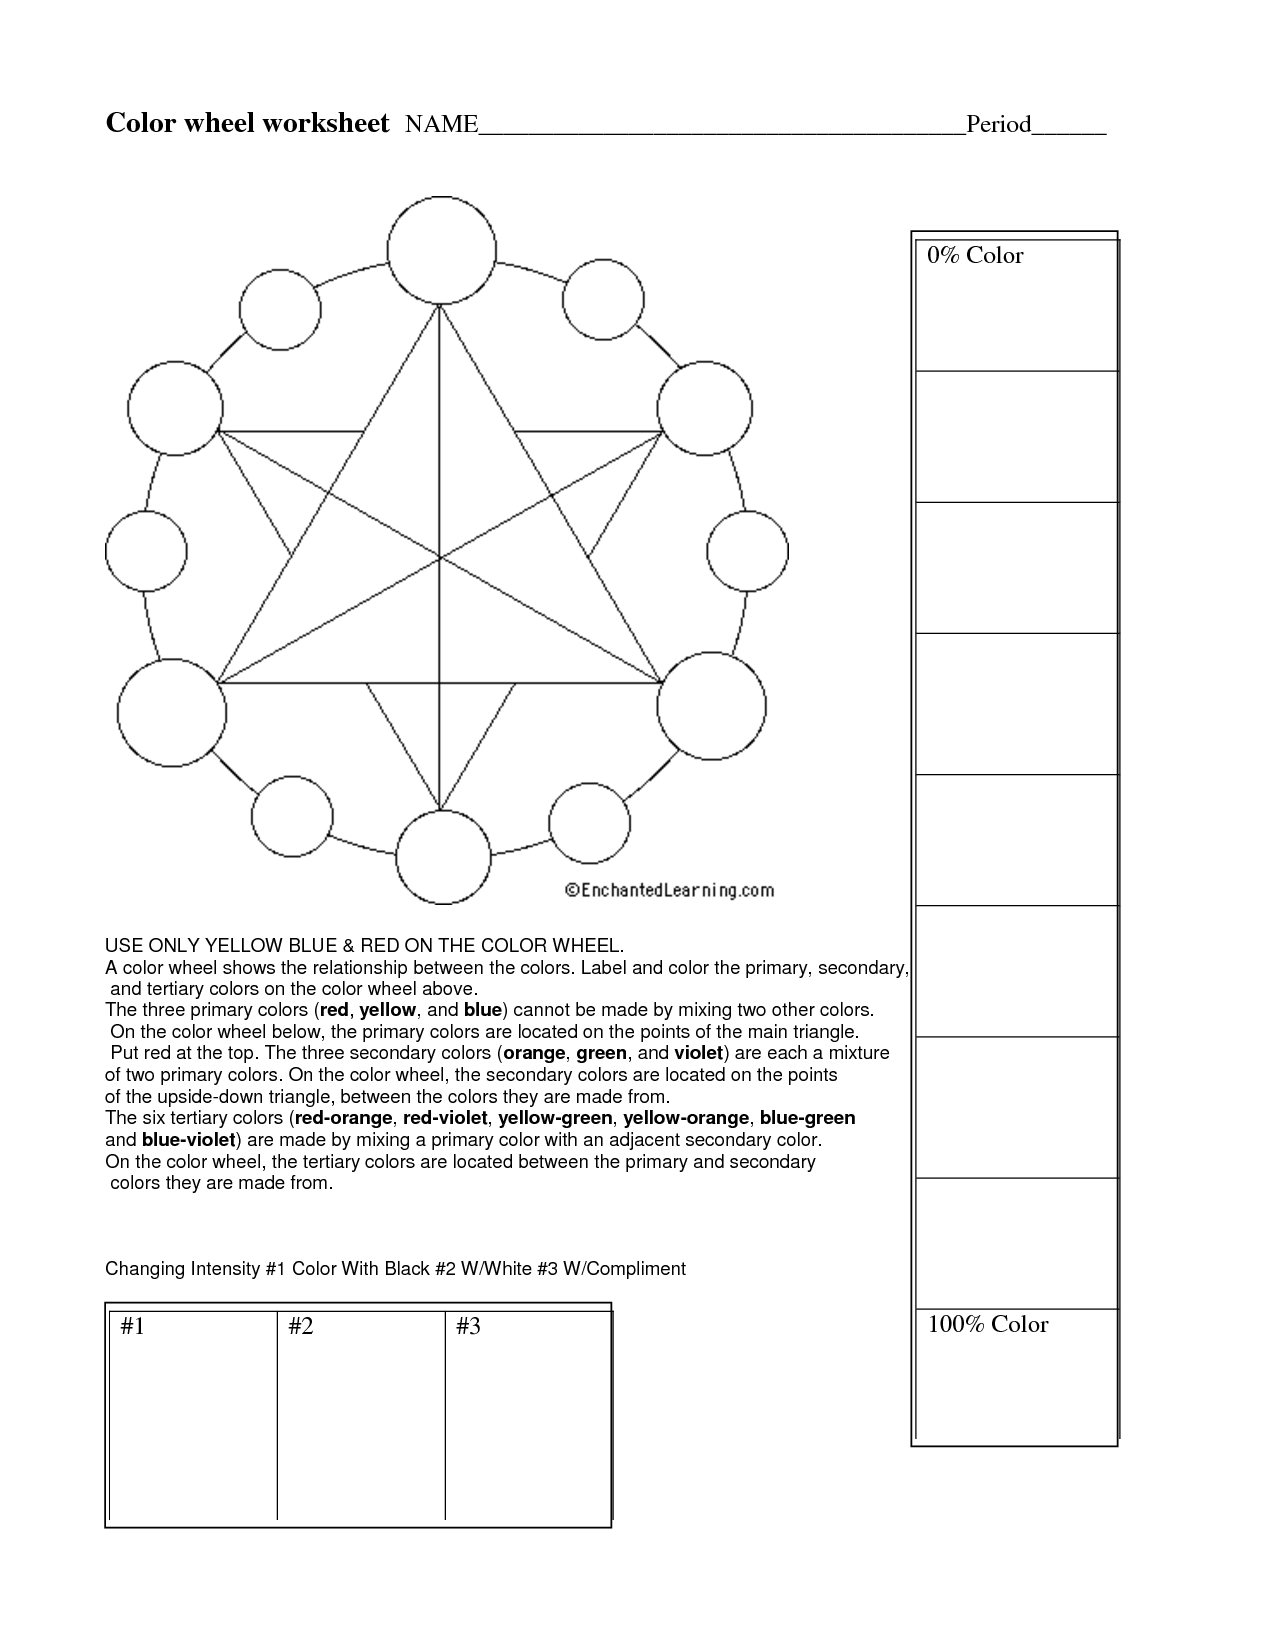 Color theory worksheet for kids - Color Theory Ws